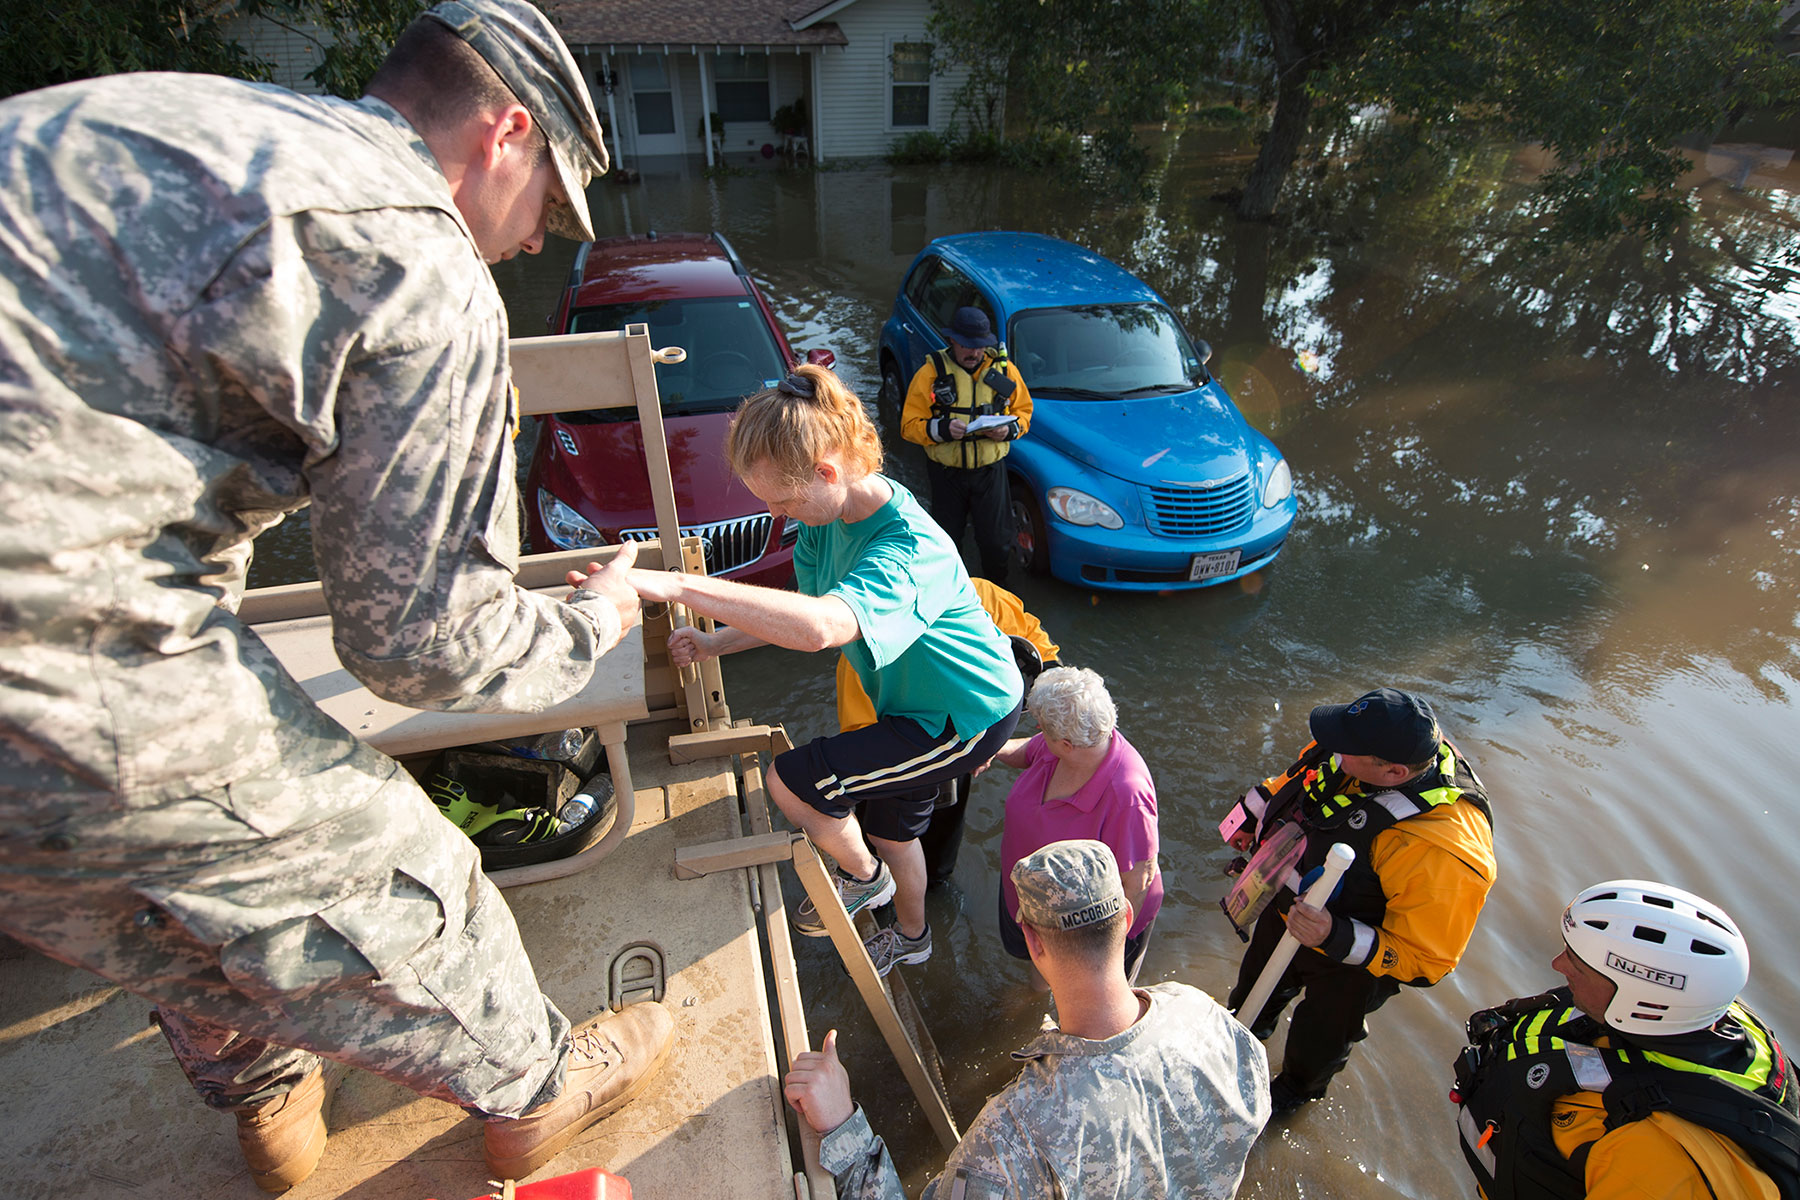 Staff Sgt. Class Richard Call, of the New Jersey National Guard, and members of New Jersey Task Force 1, assist evacuees into a Light Medium Tactical Vehicle (LMTV) to during water rescue operations in Wharton, Texas, Aug. 31, 2017. (Air National Guard/ Robert Shelley)